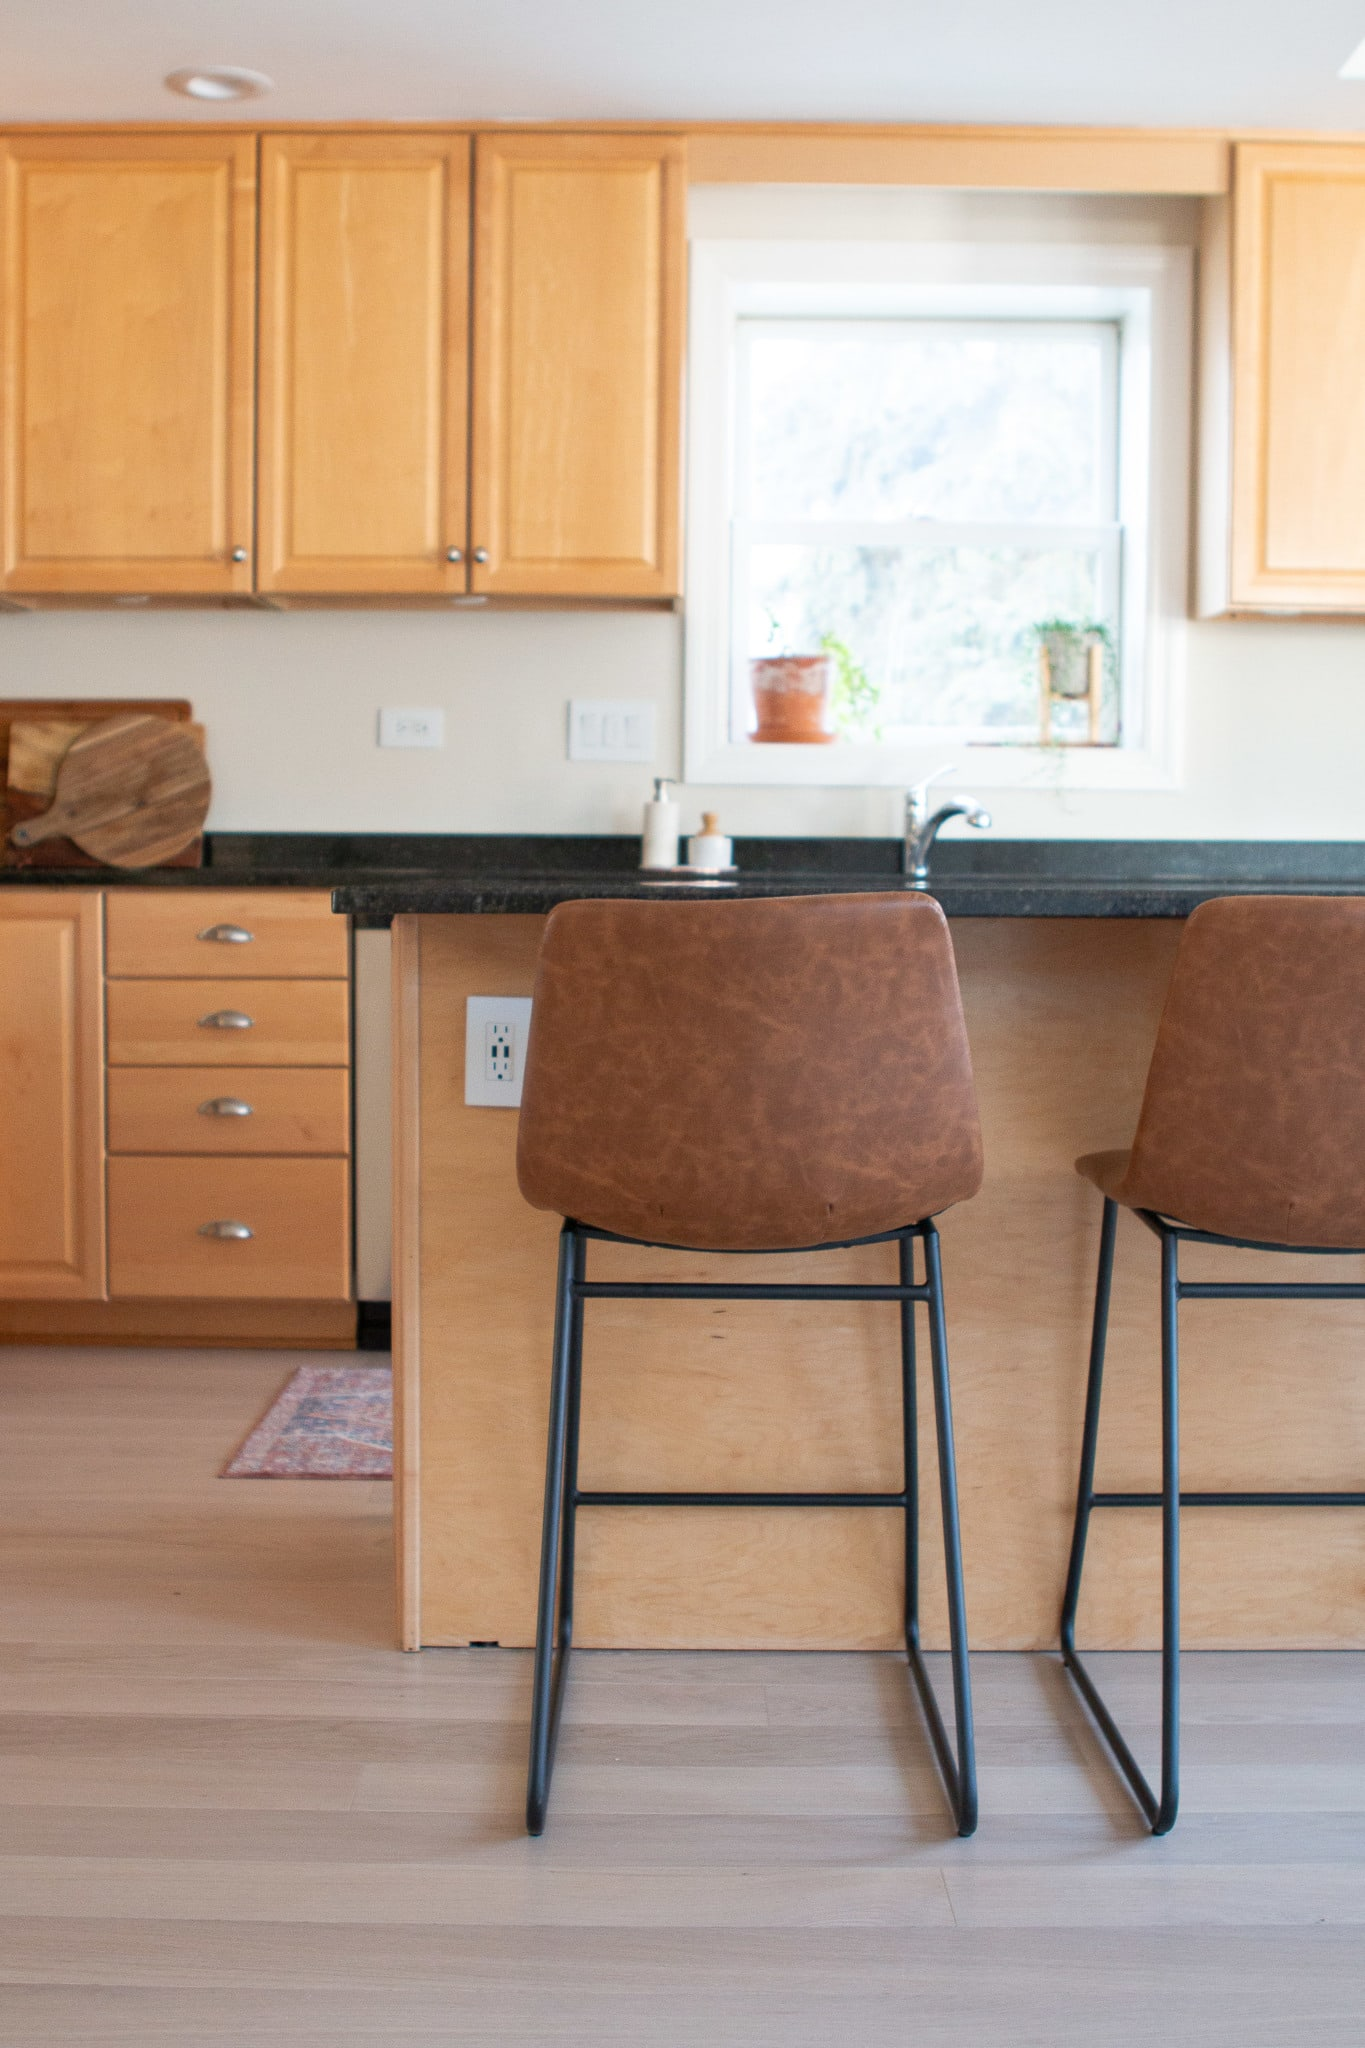 Our leather kitchen stools